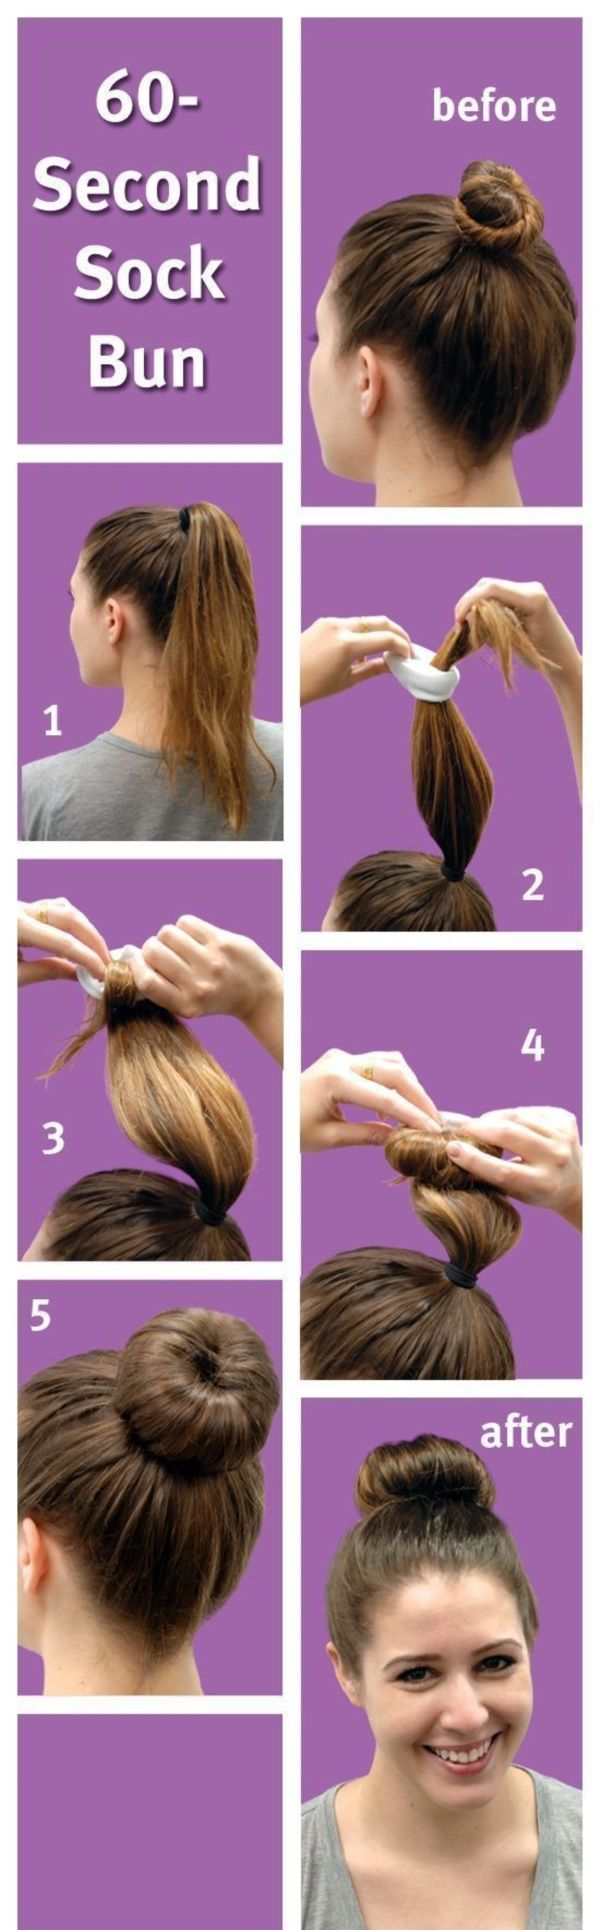 60 SECOND SOCK BUN   HAIRSTYLE FOR WORKING WOMEN   HOW TO MAKE A SOCK BUN   TUTORIALS TO MAKE SOCK BUN   STEP BY STEP TUTORIALS FOR SOCK BUN   How to Make a Sock Bun: 18 Step by Step Tutorials